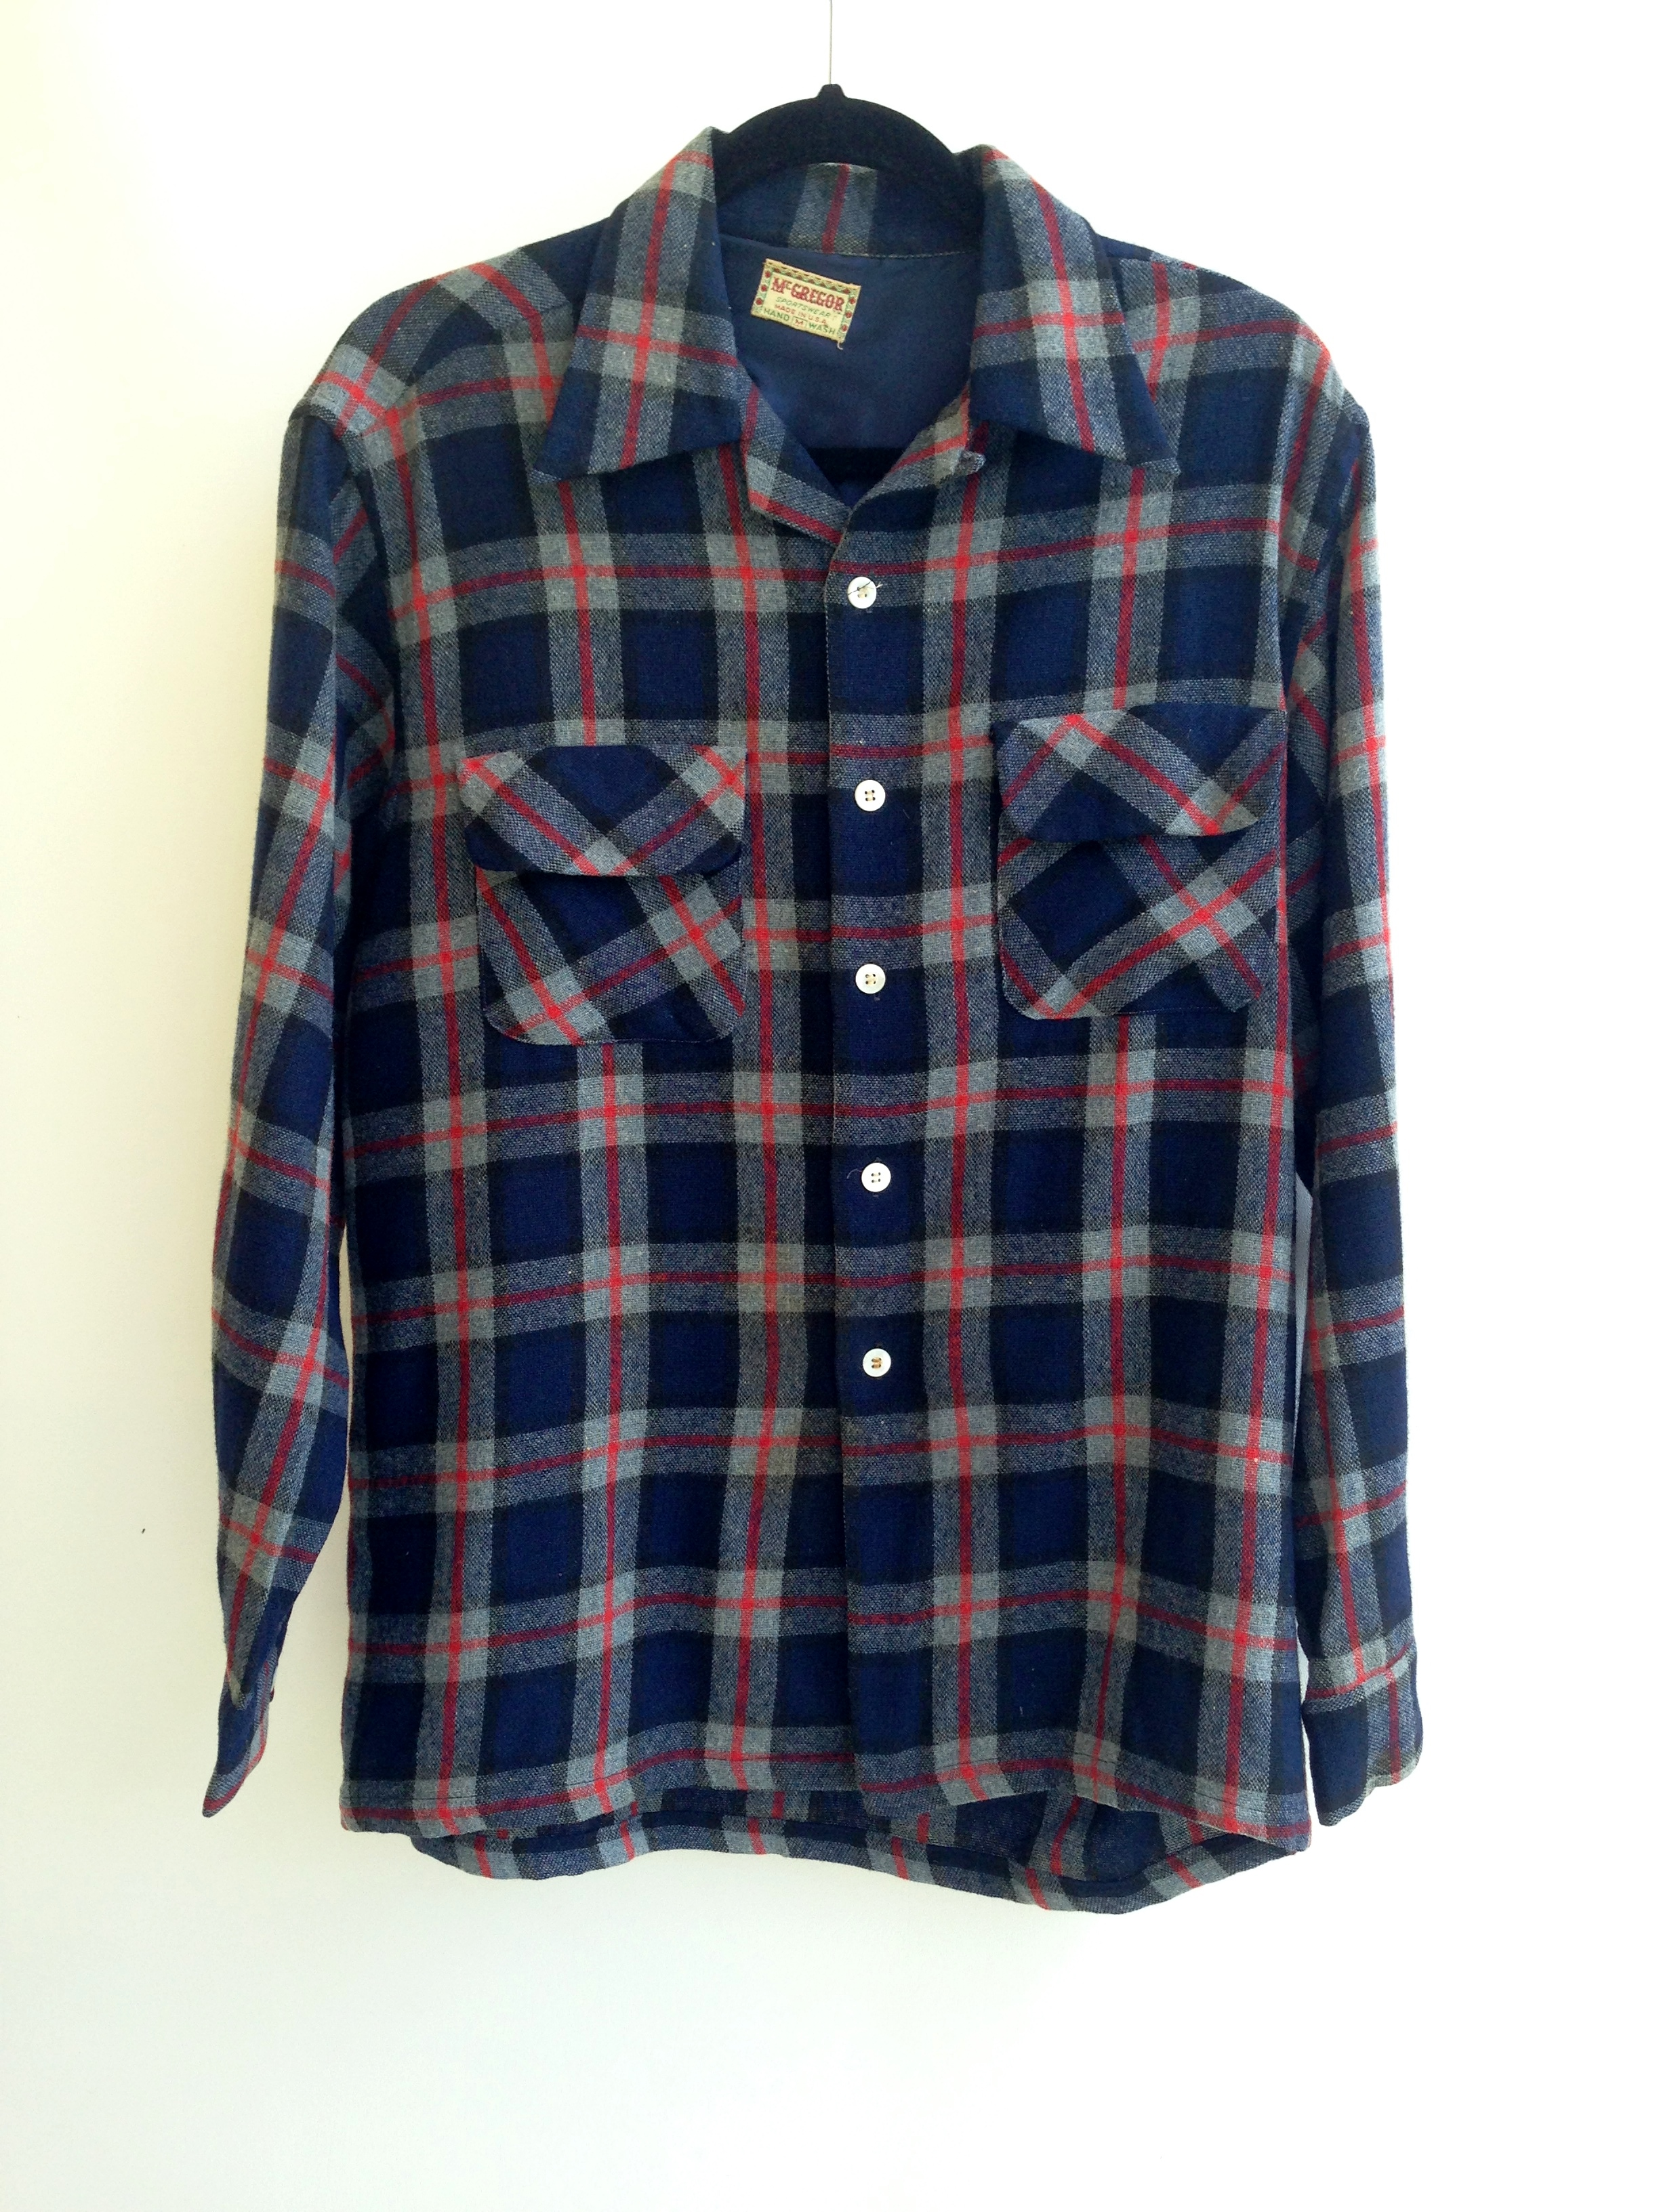 1940's - 1950's Men's Plaid Flannel Shirt by McGregor